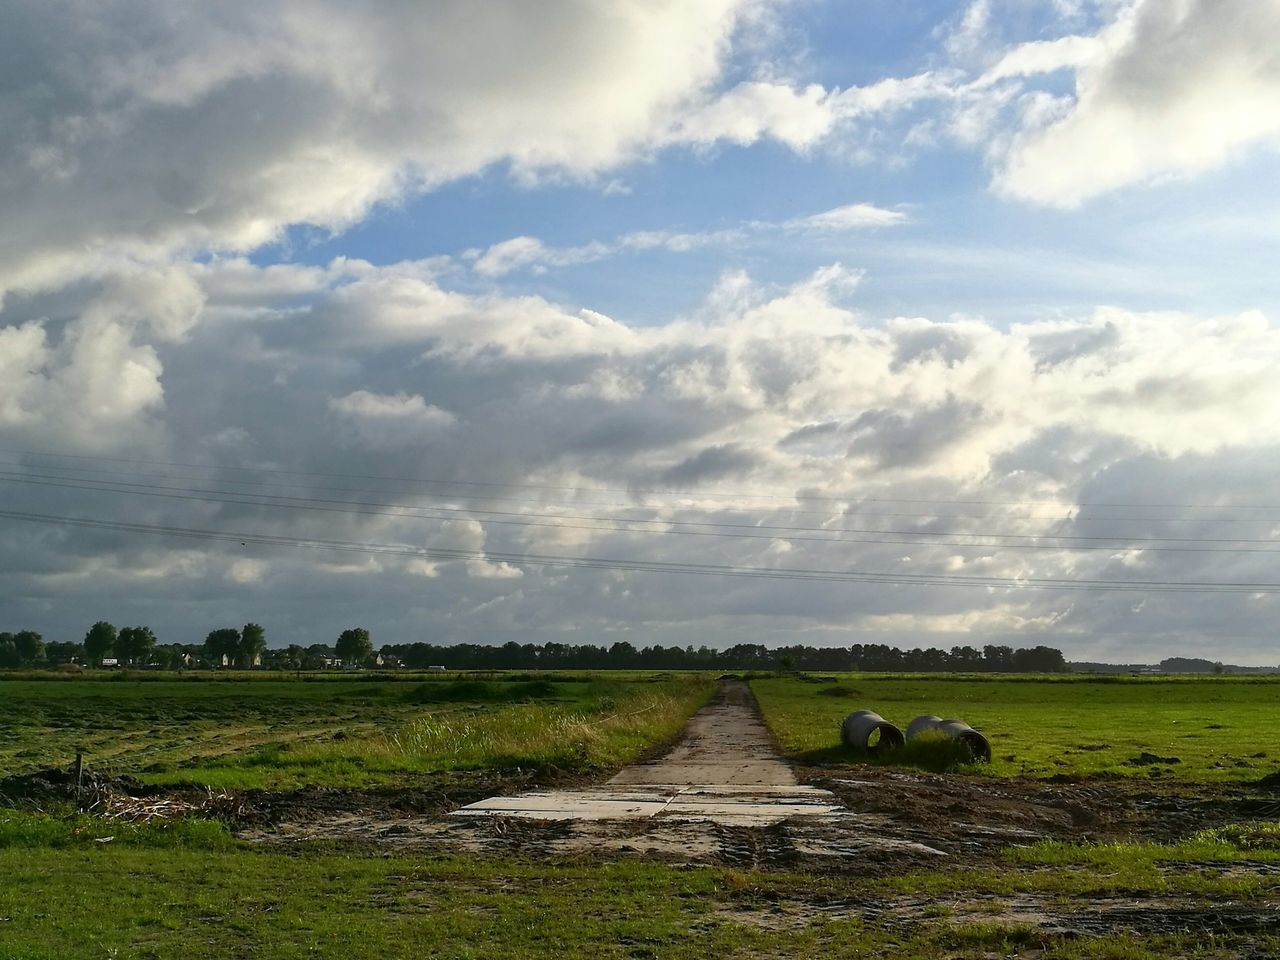 Will this road ever end? Photographing Photography Photooftheday Photographylovers Amateurphotographer  Clouds And Sky Dutch Landscape Holland Cloudscape Butenfjild Houtwiel HuaweiP9 Lovetophotograph Landscapephotography Landscape_photography Landscapes Landscape_Collection Landscape Naturelover Nature Photography Nature Clouds Collection Cloudsandsky